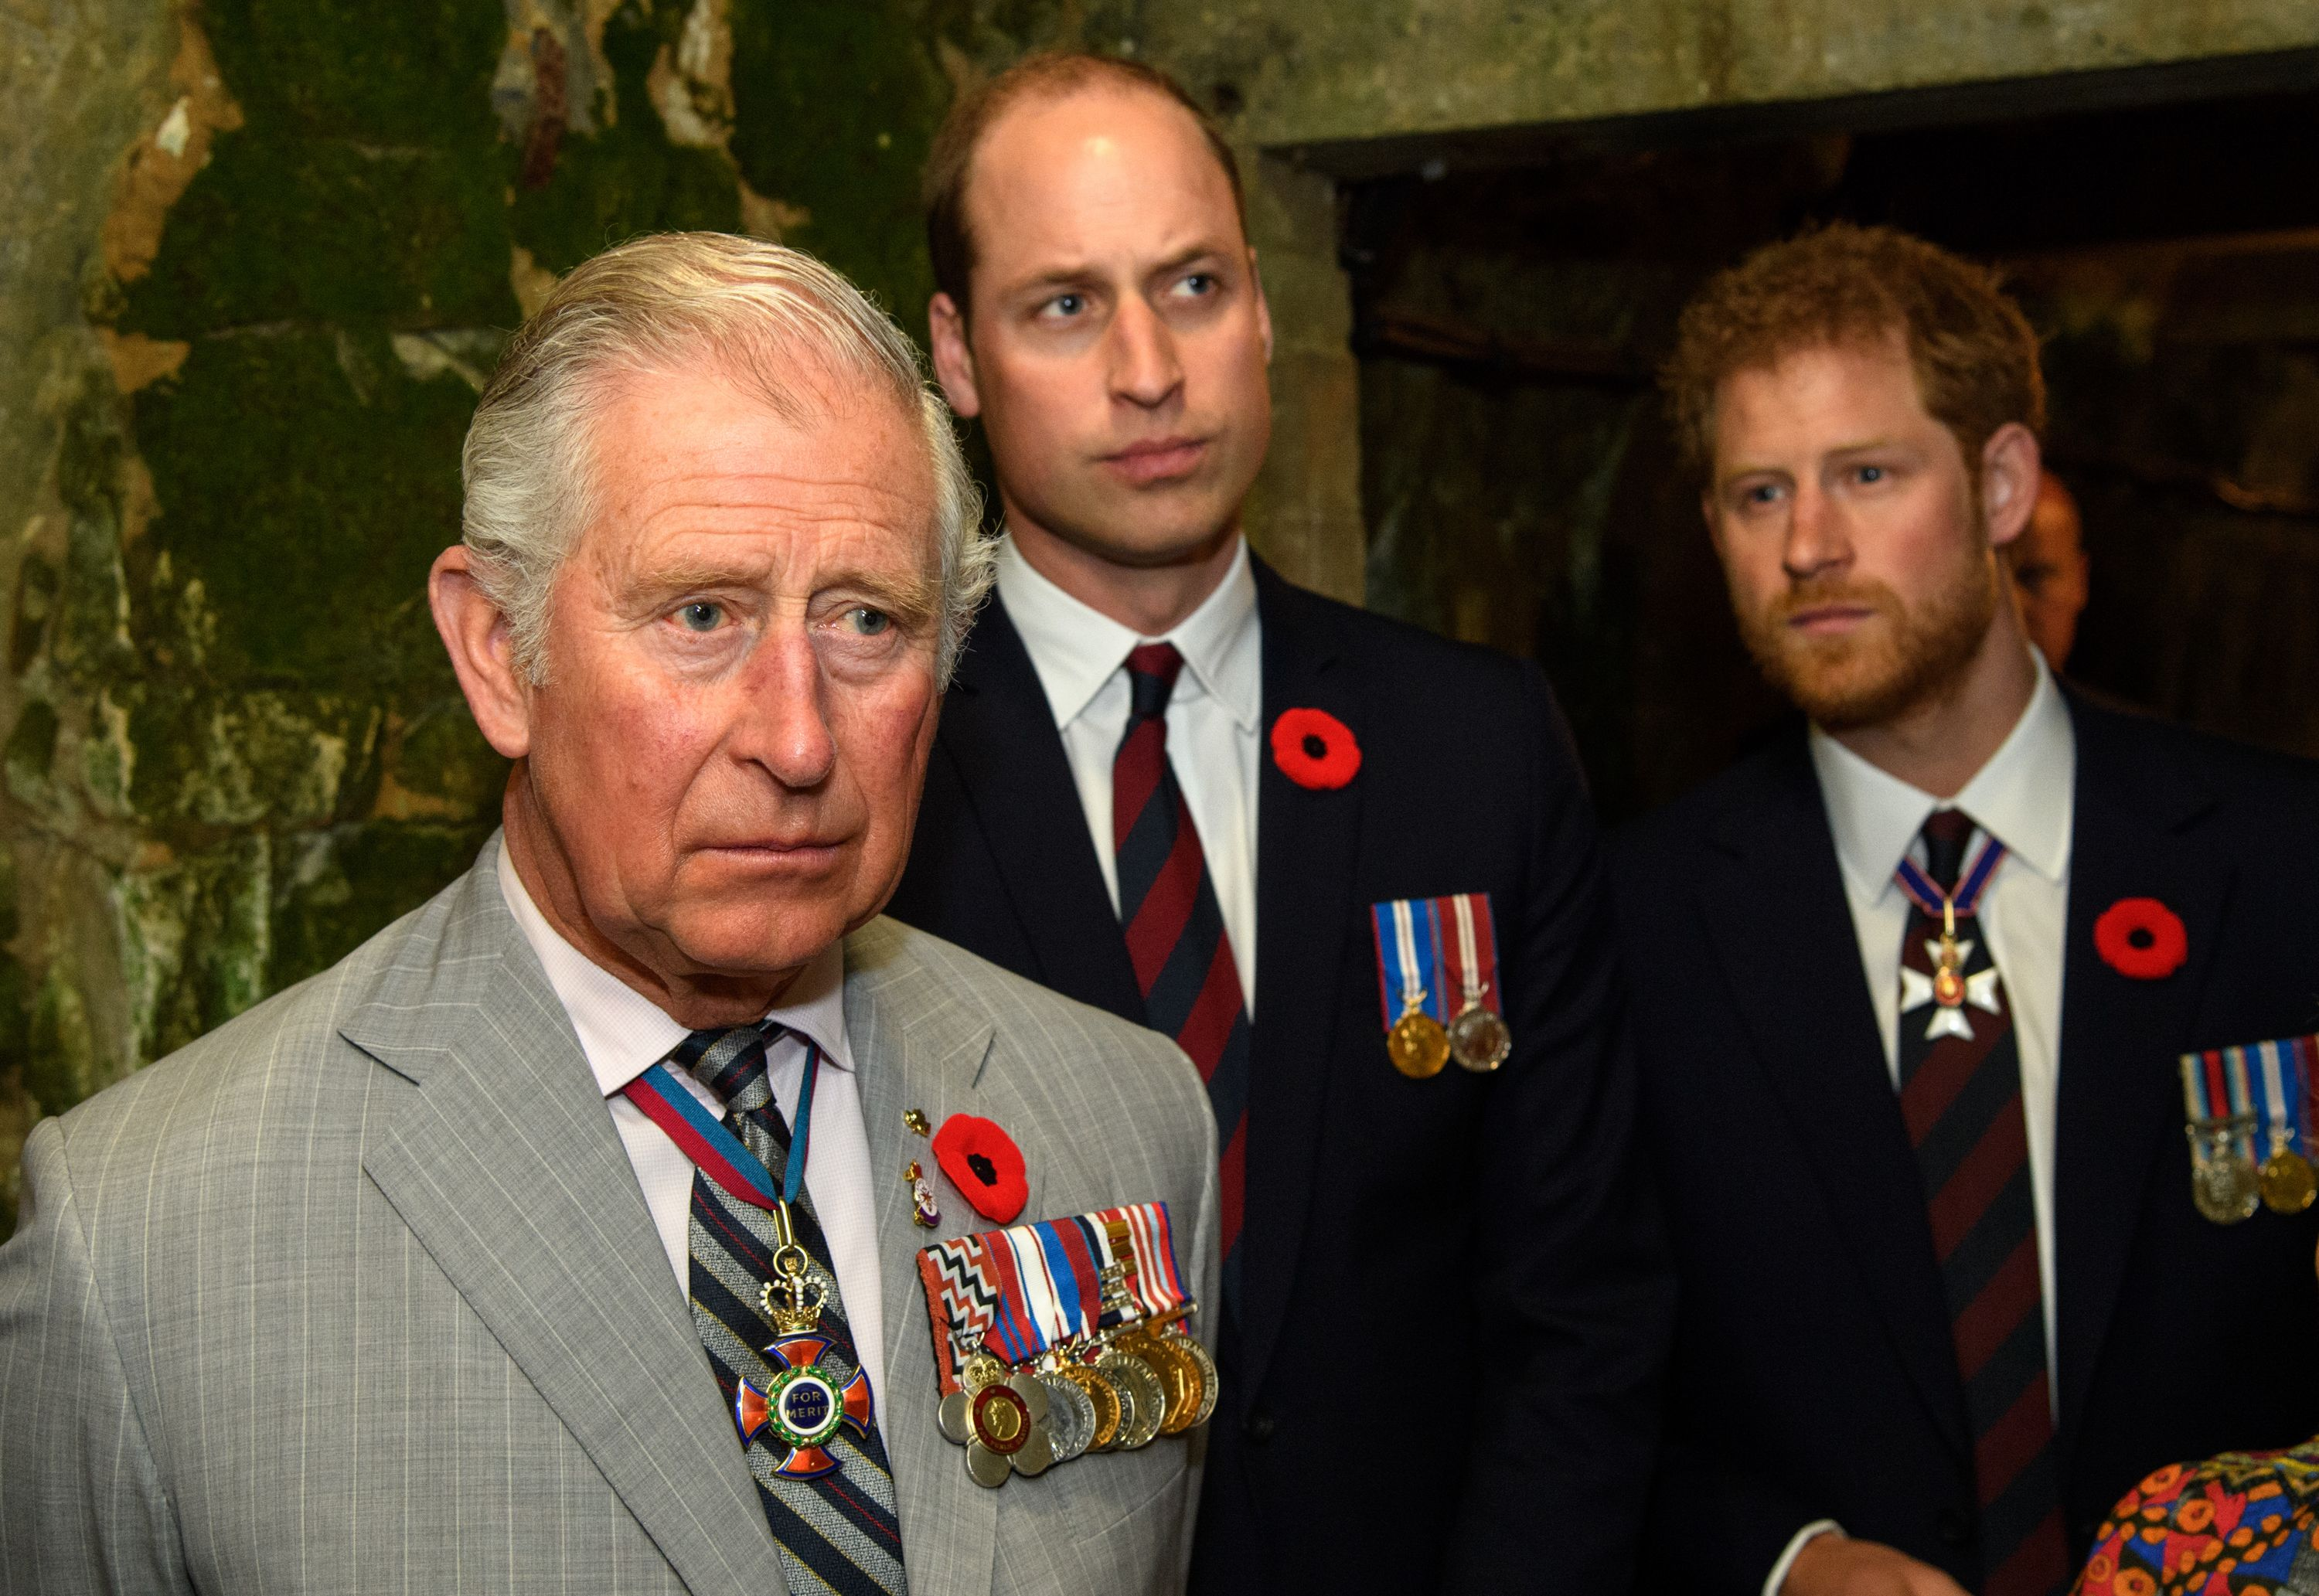 Prince Charles, Prince William, and Prince Harry during the commemorations for the 100th anniversary of the battle of Vimy Ridge on April 9, 2017 | Photo: Getty Images